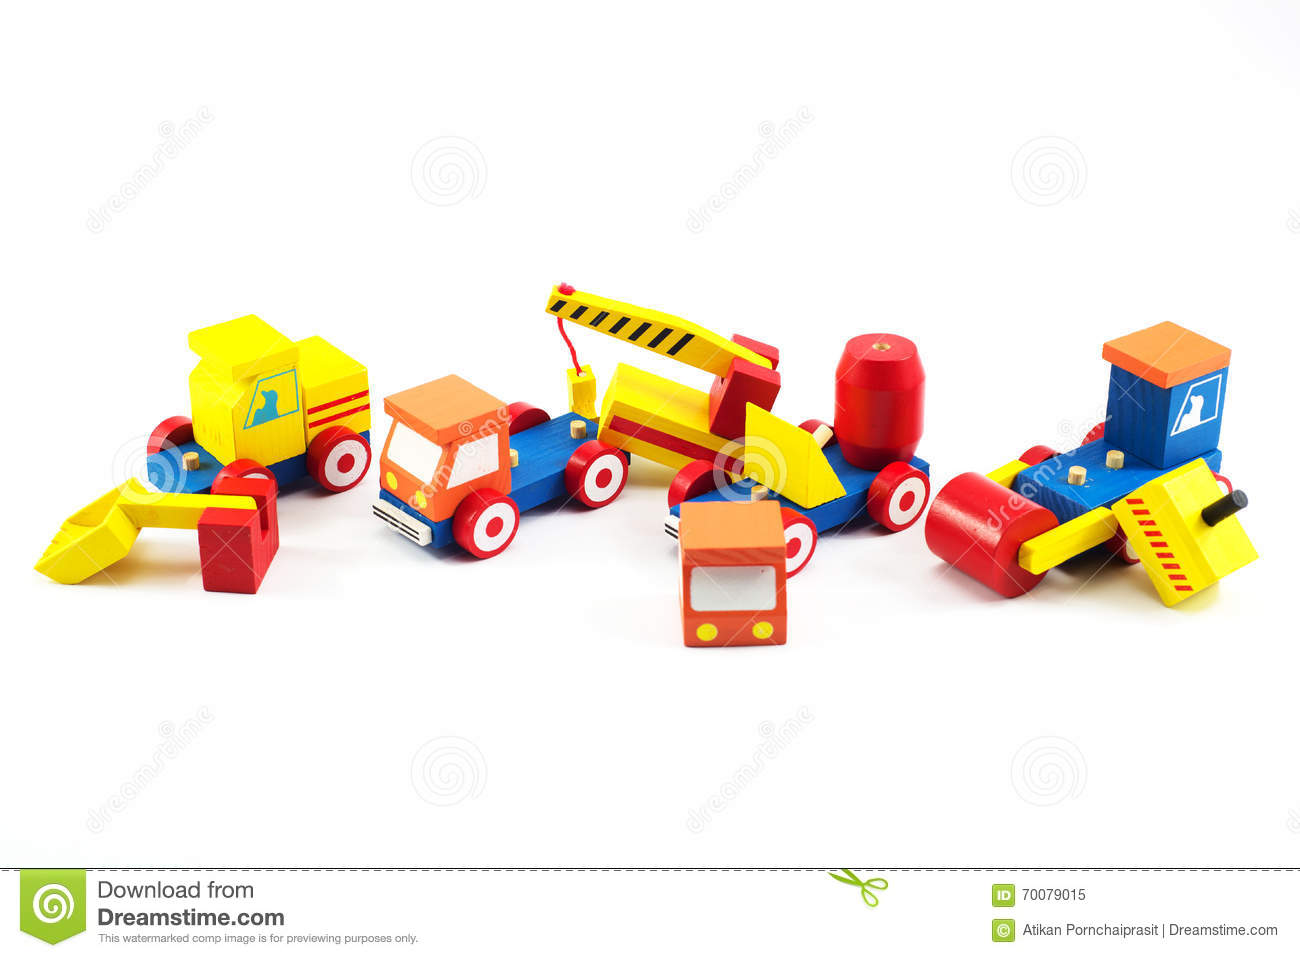 Wooden toy car, Brain development, Skills Preschool.